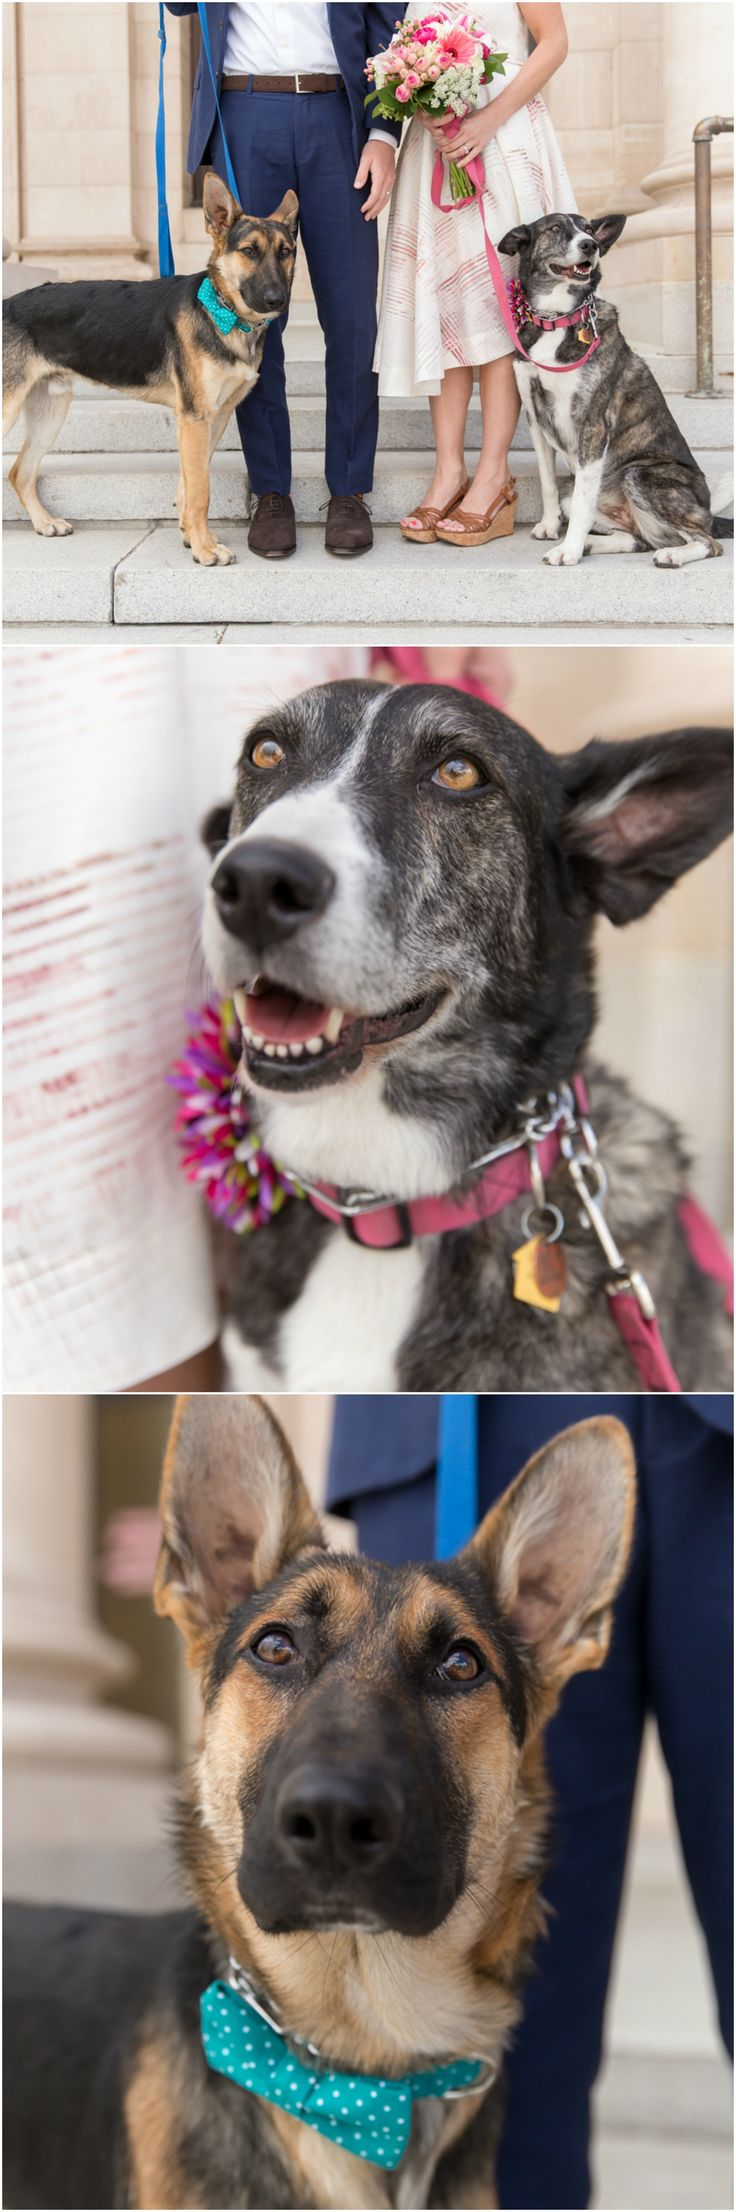 Wedding dogs, German Shepherd, pink collar with roses, turquoise collar with bowtie // Fifth and Chestnut Photo Co.